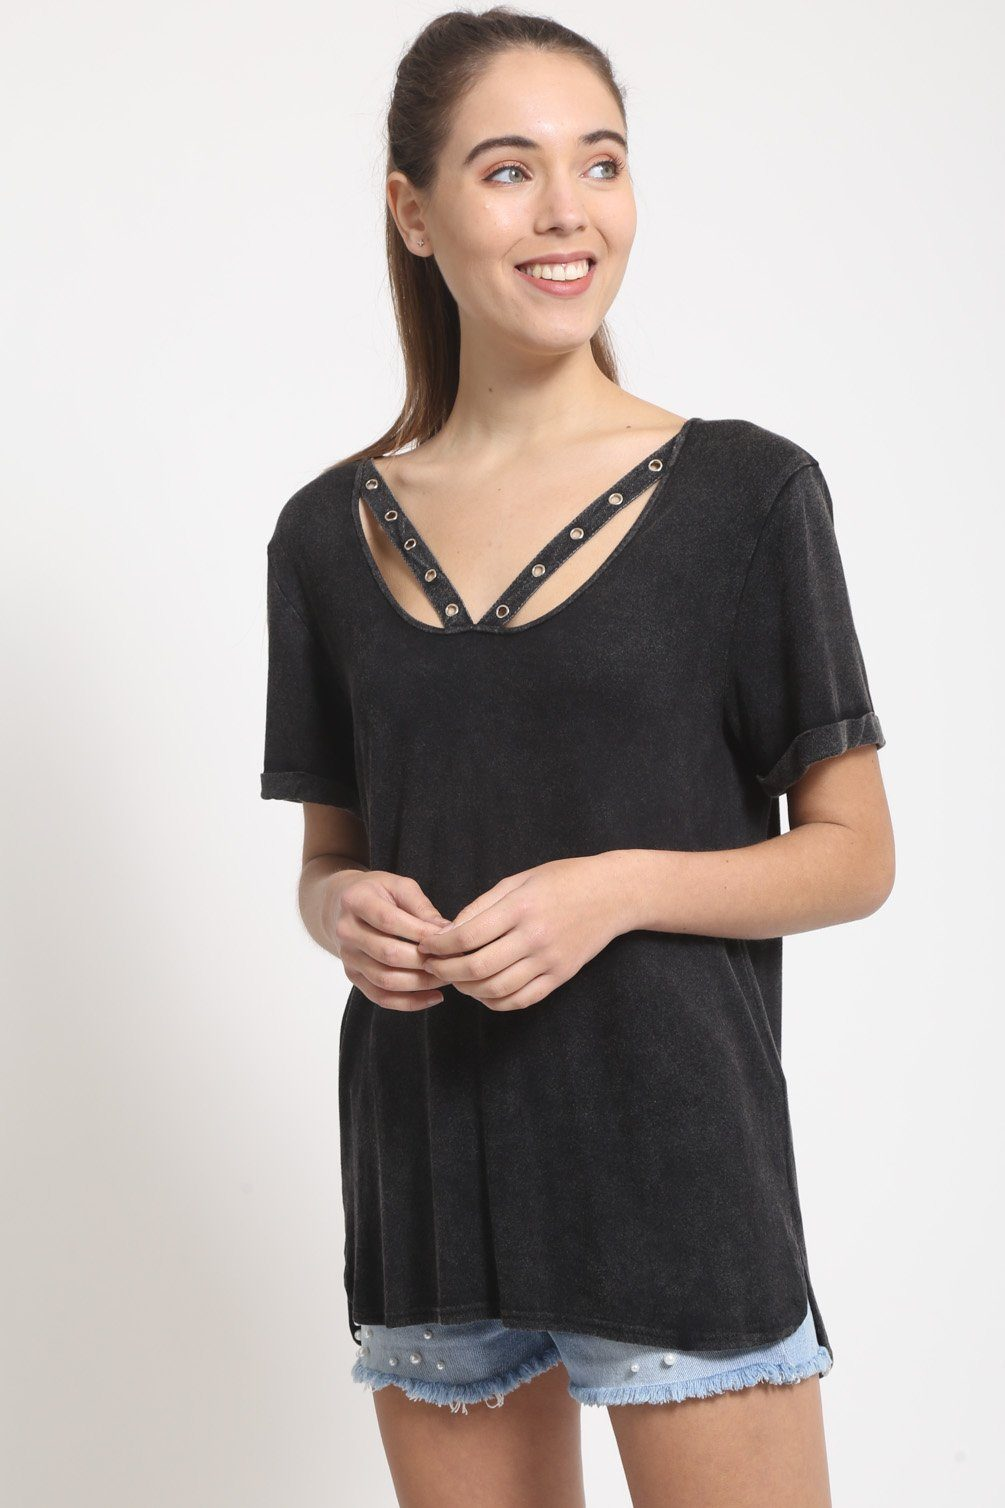 Distressed Black V-neck Tee with Eyelet Detailing tops